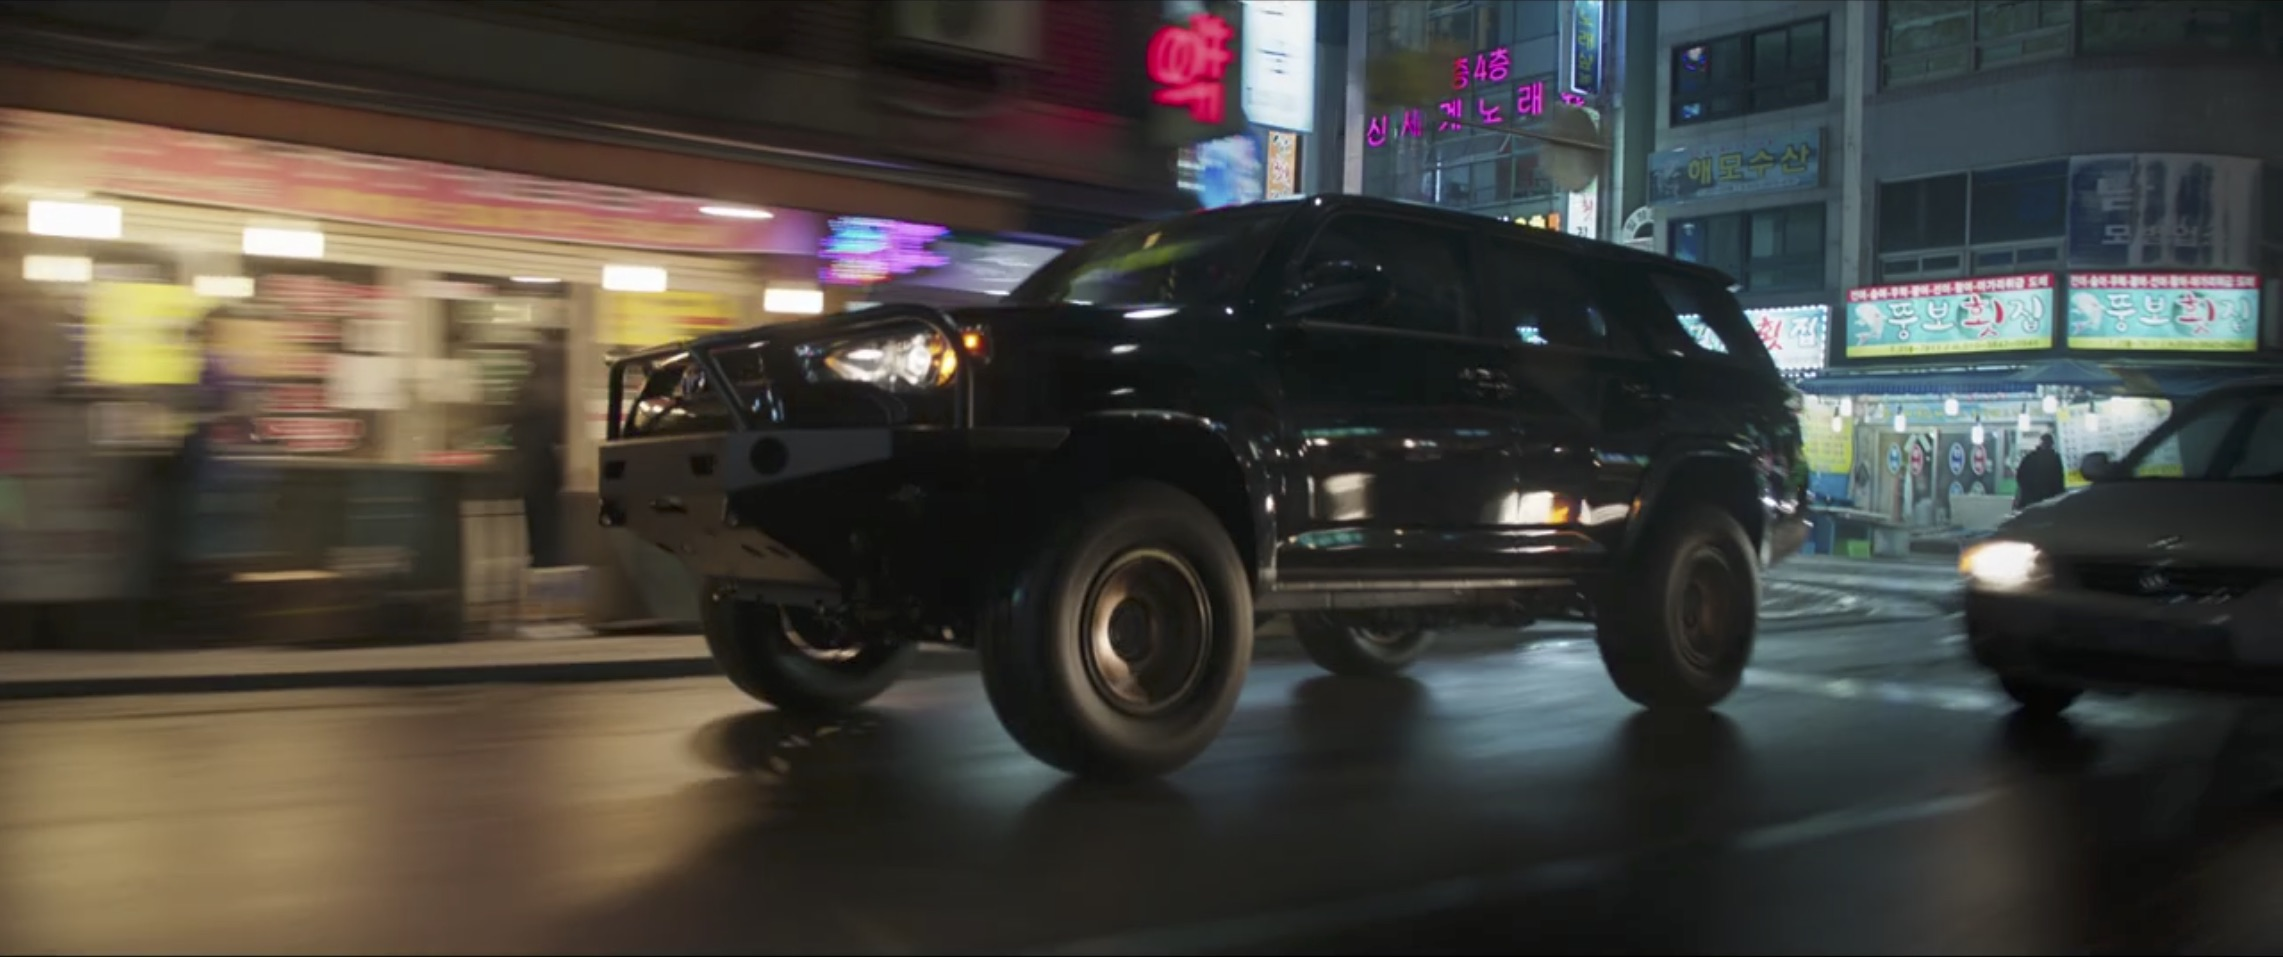 Marvel Black Panther armored suv